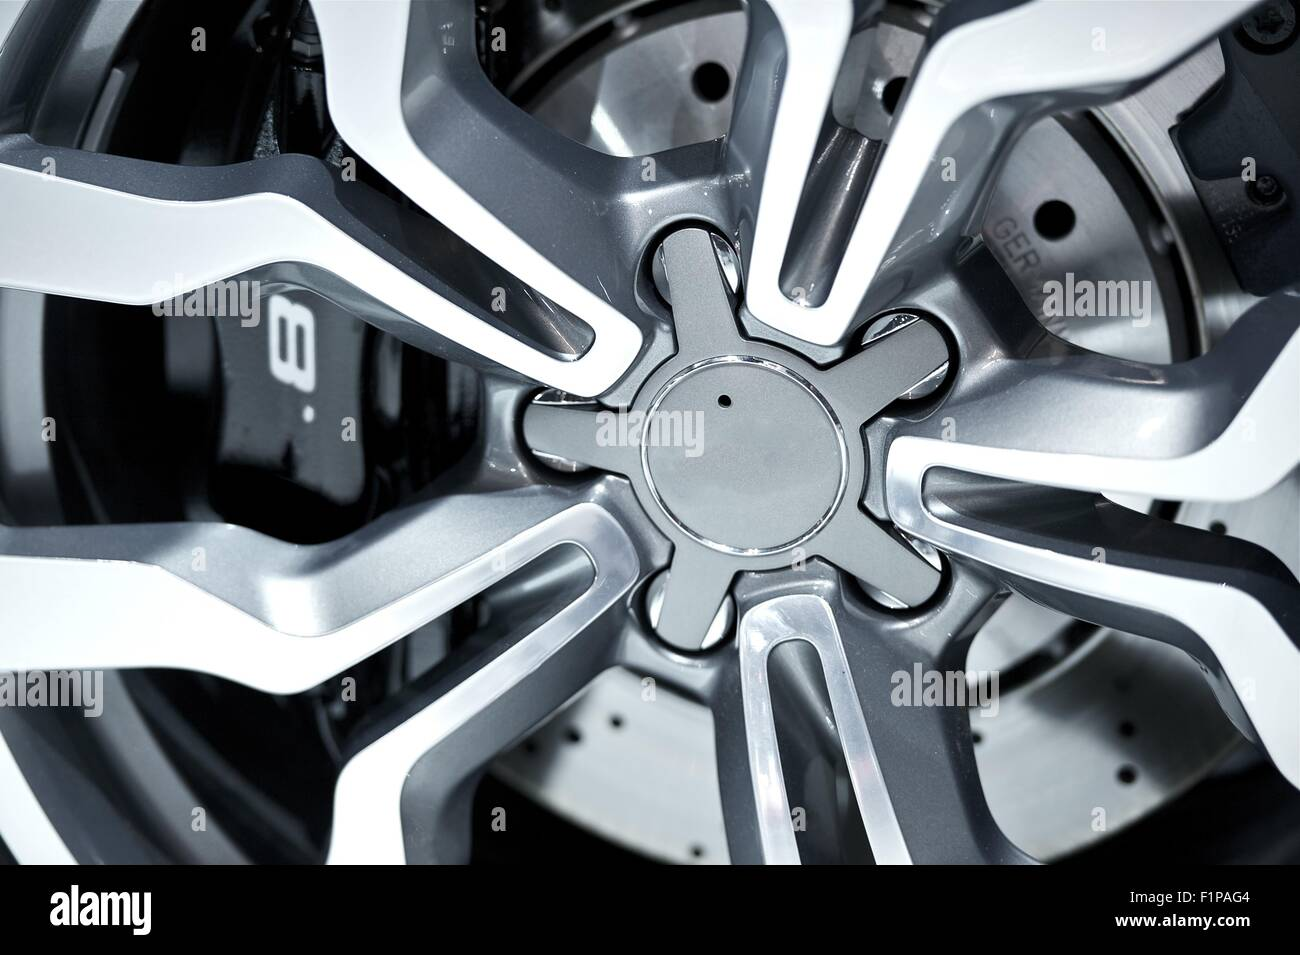 Alloy Wheel Closeup - Alloy Design. Transportation Photo Collection. - Stock Image